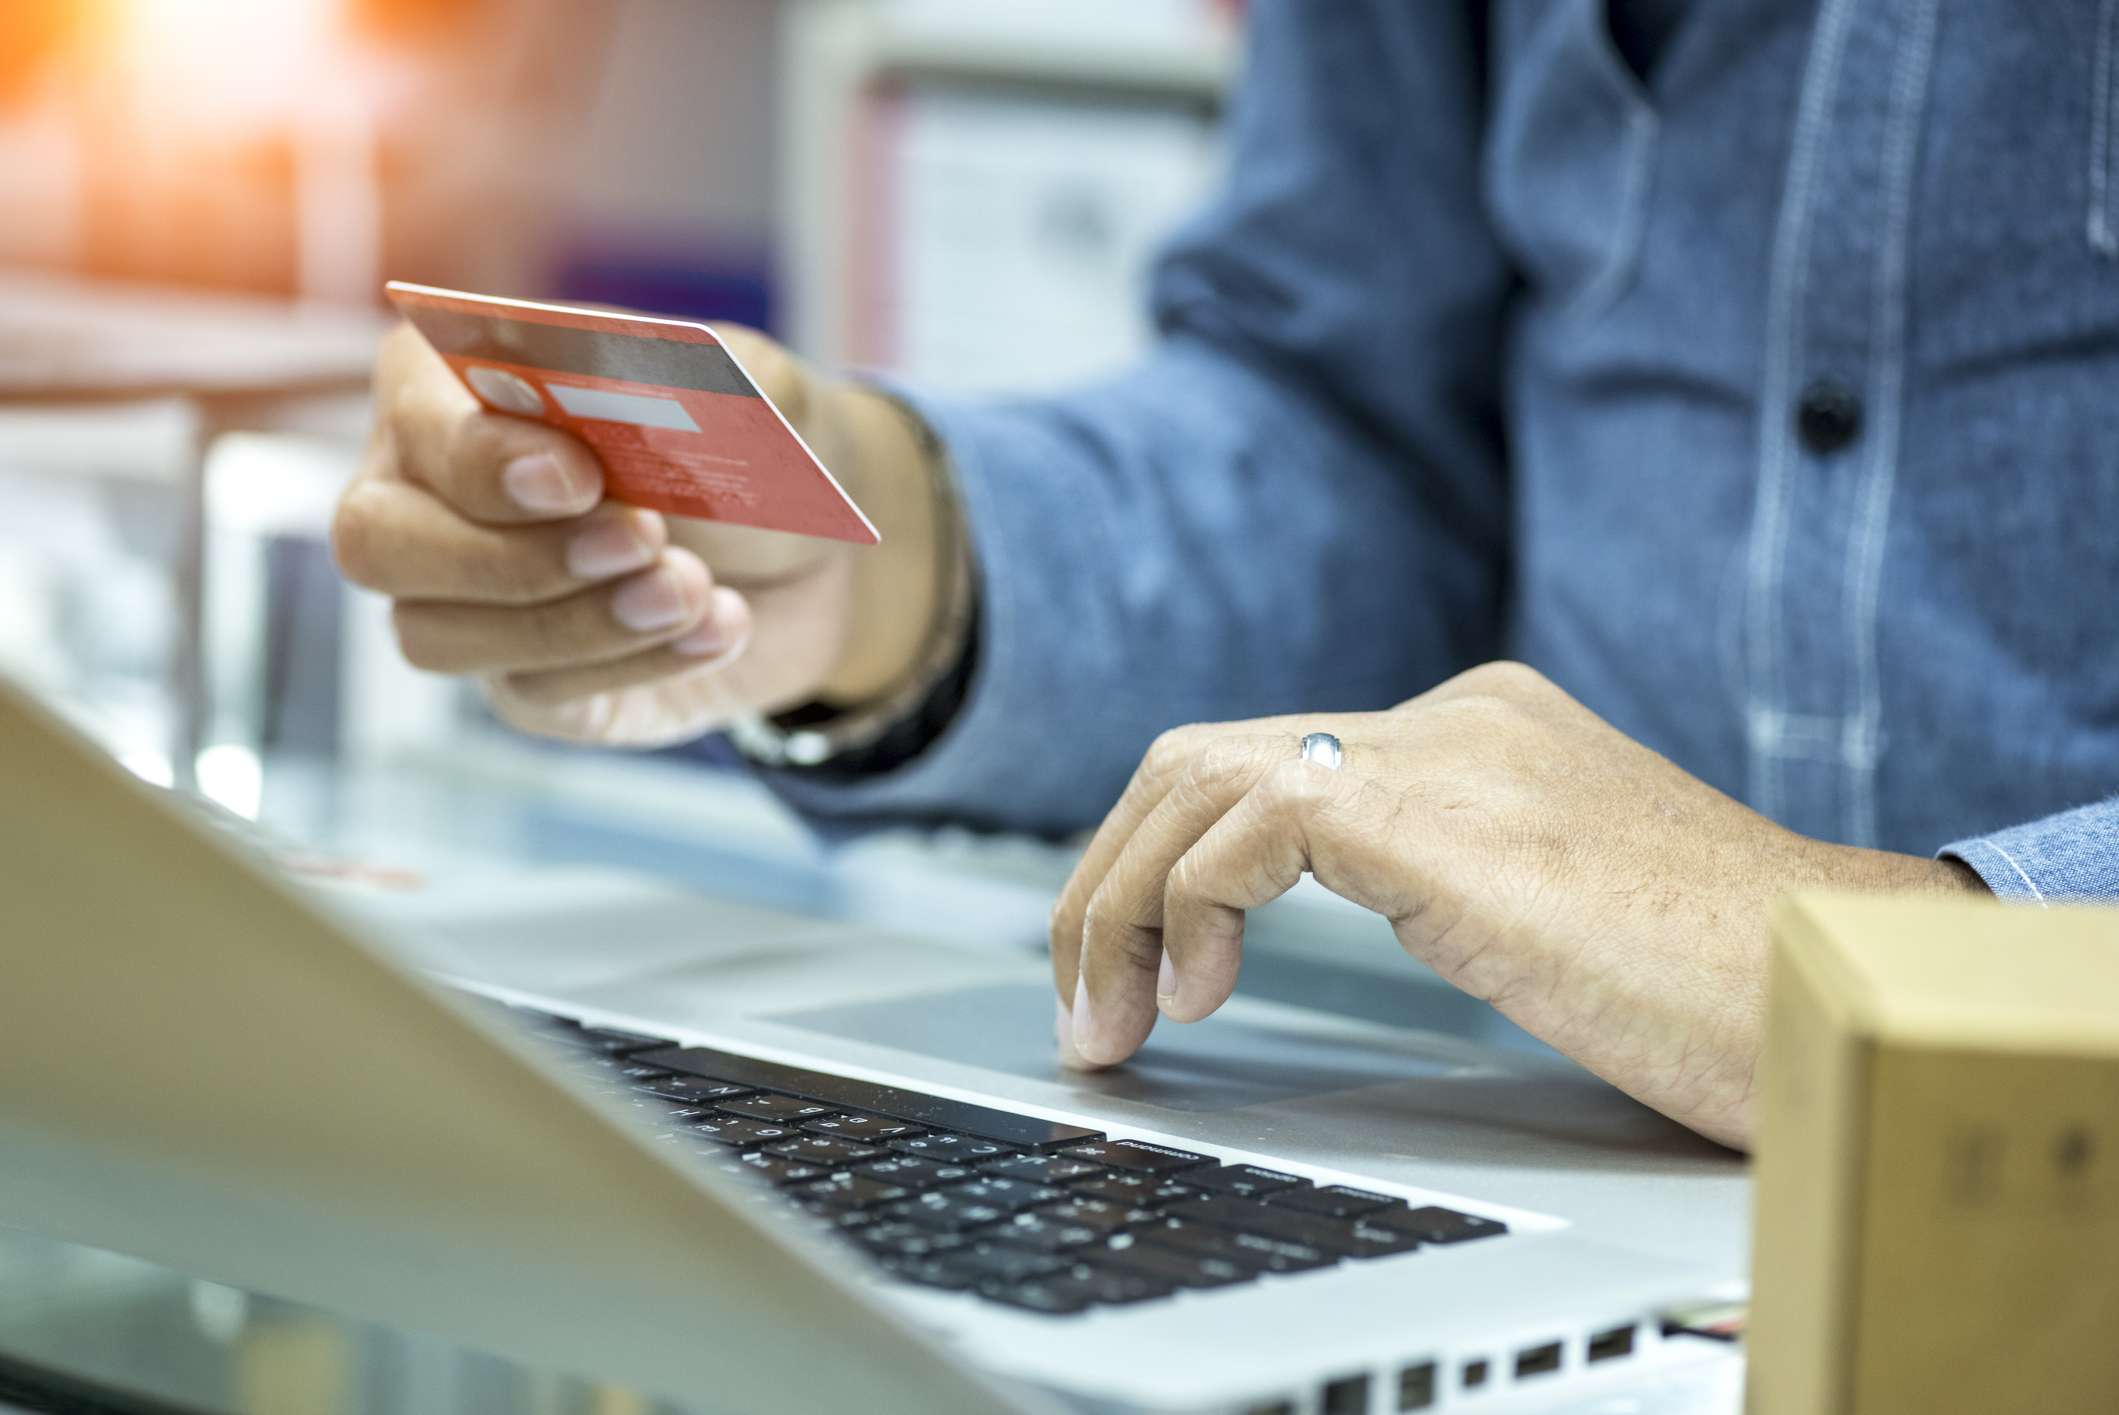 Determining if a credit card can be closed